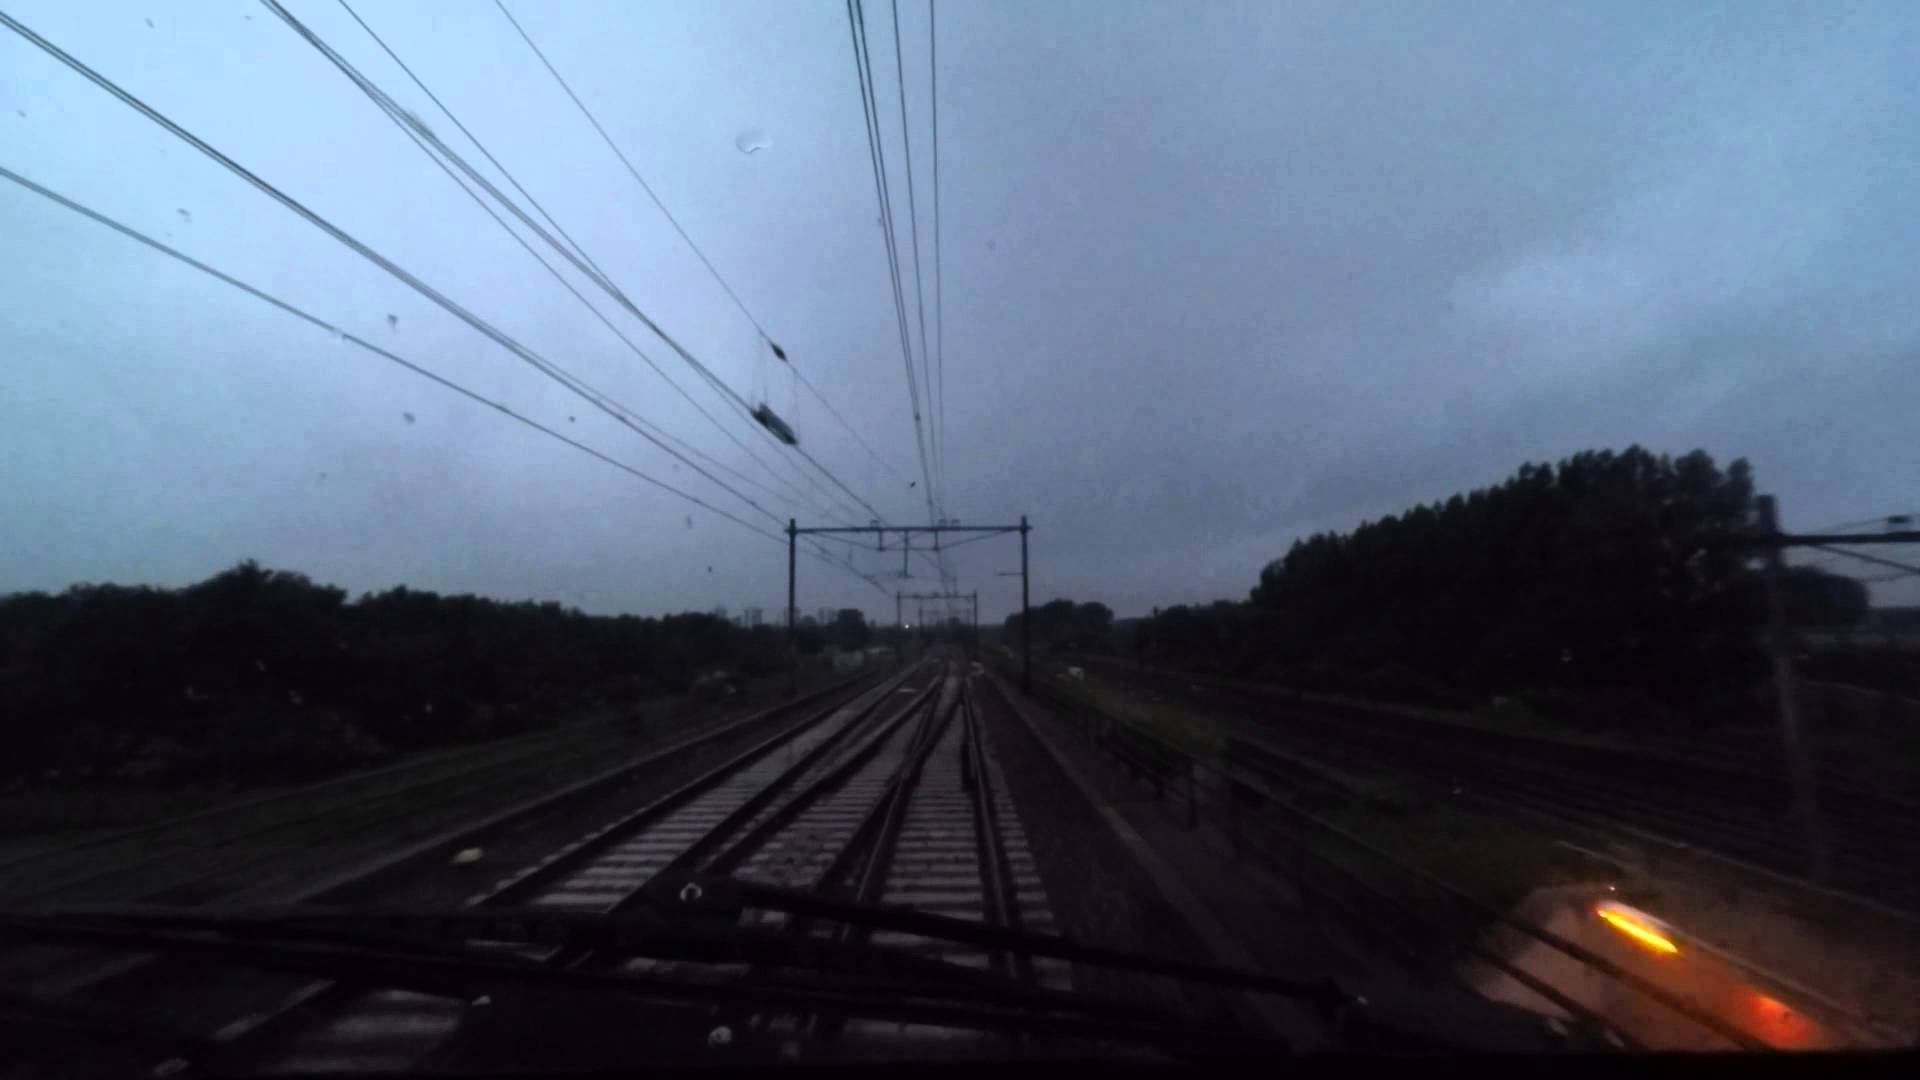 [cabinerit] A train driver's view: Lelystad Centrum – Den Haag CS, VIRM, 10-Jun-2015.